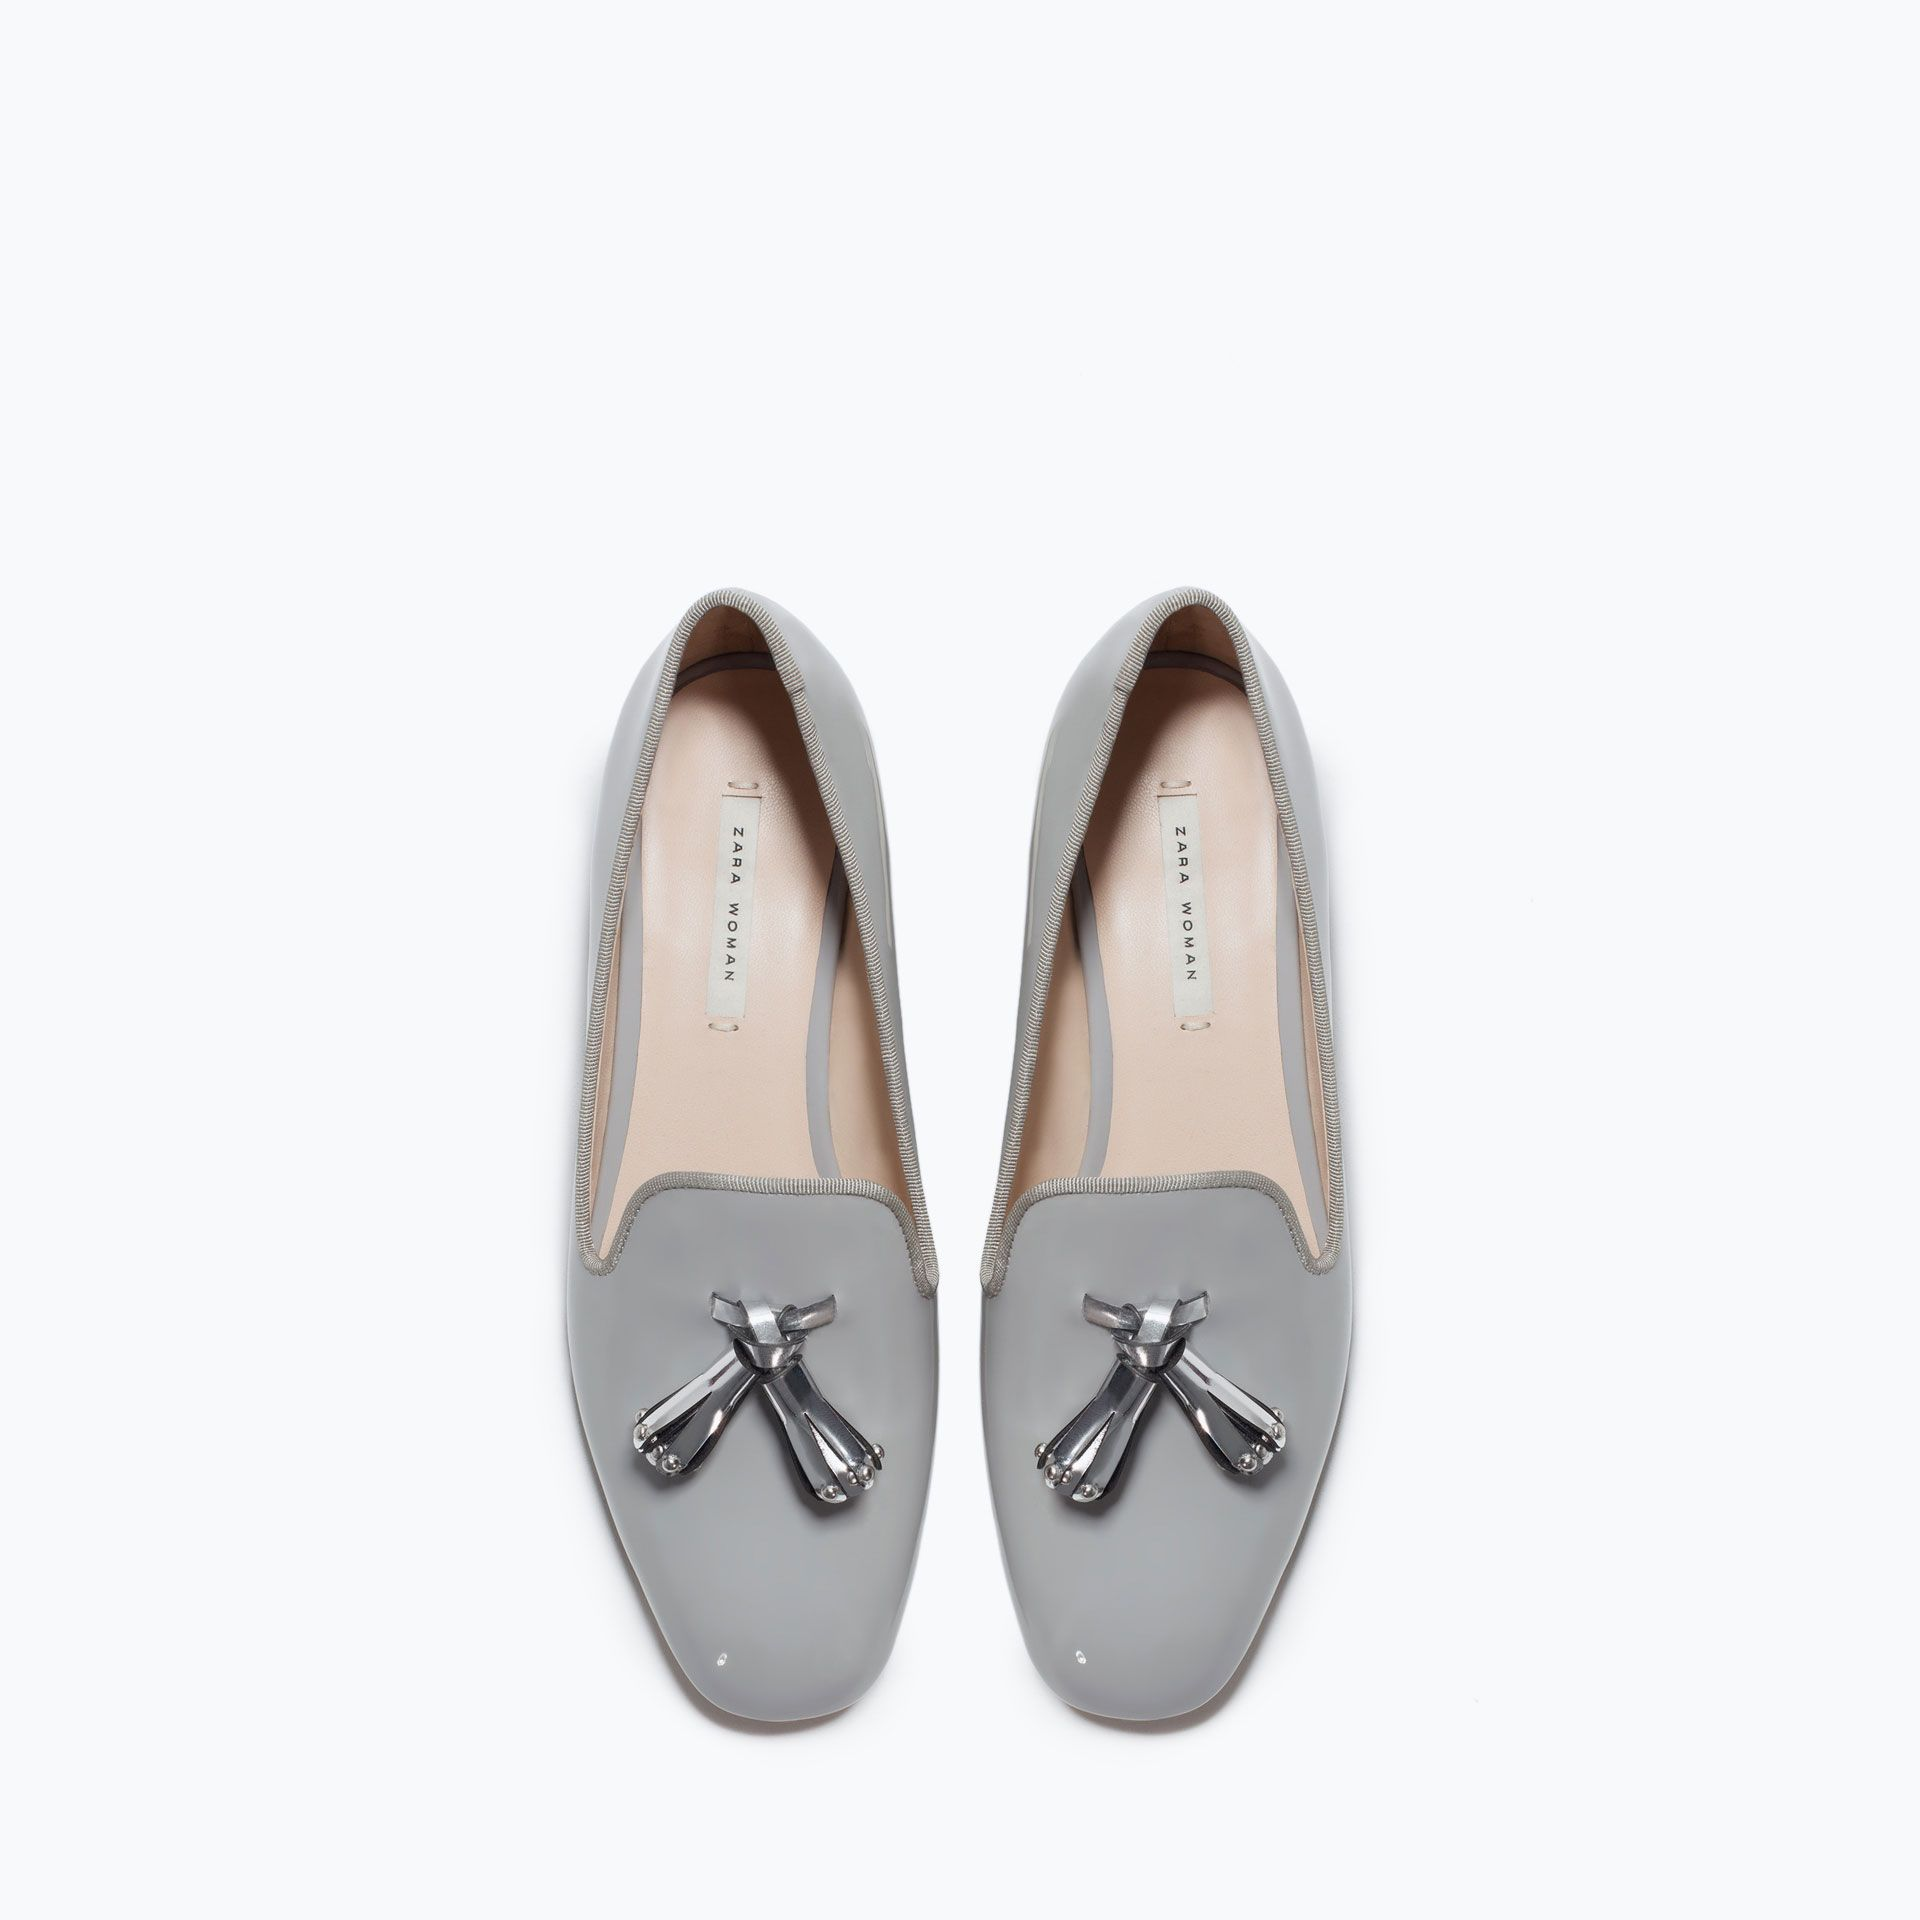 Flat shoes with tassels - View all - Shoes - WOMAN   ZARA United States